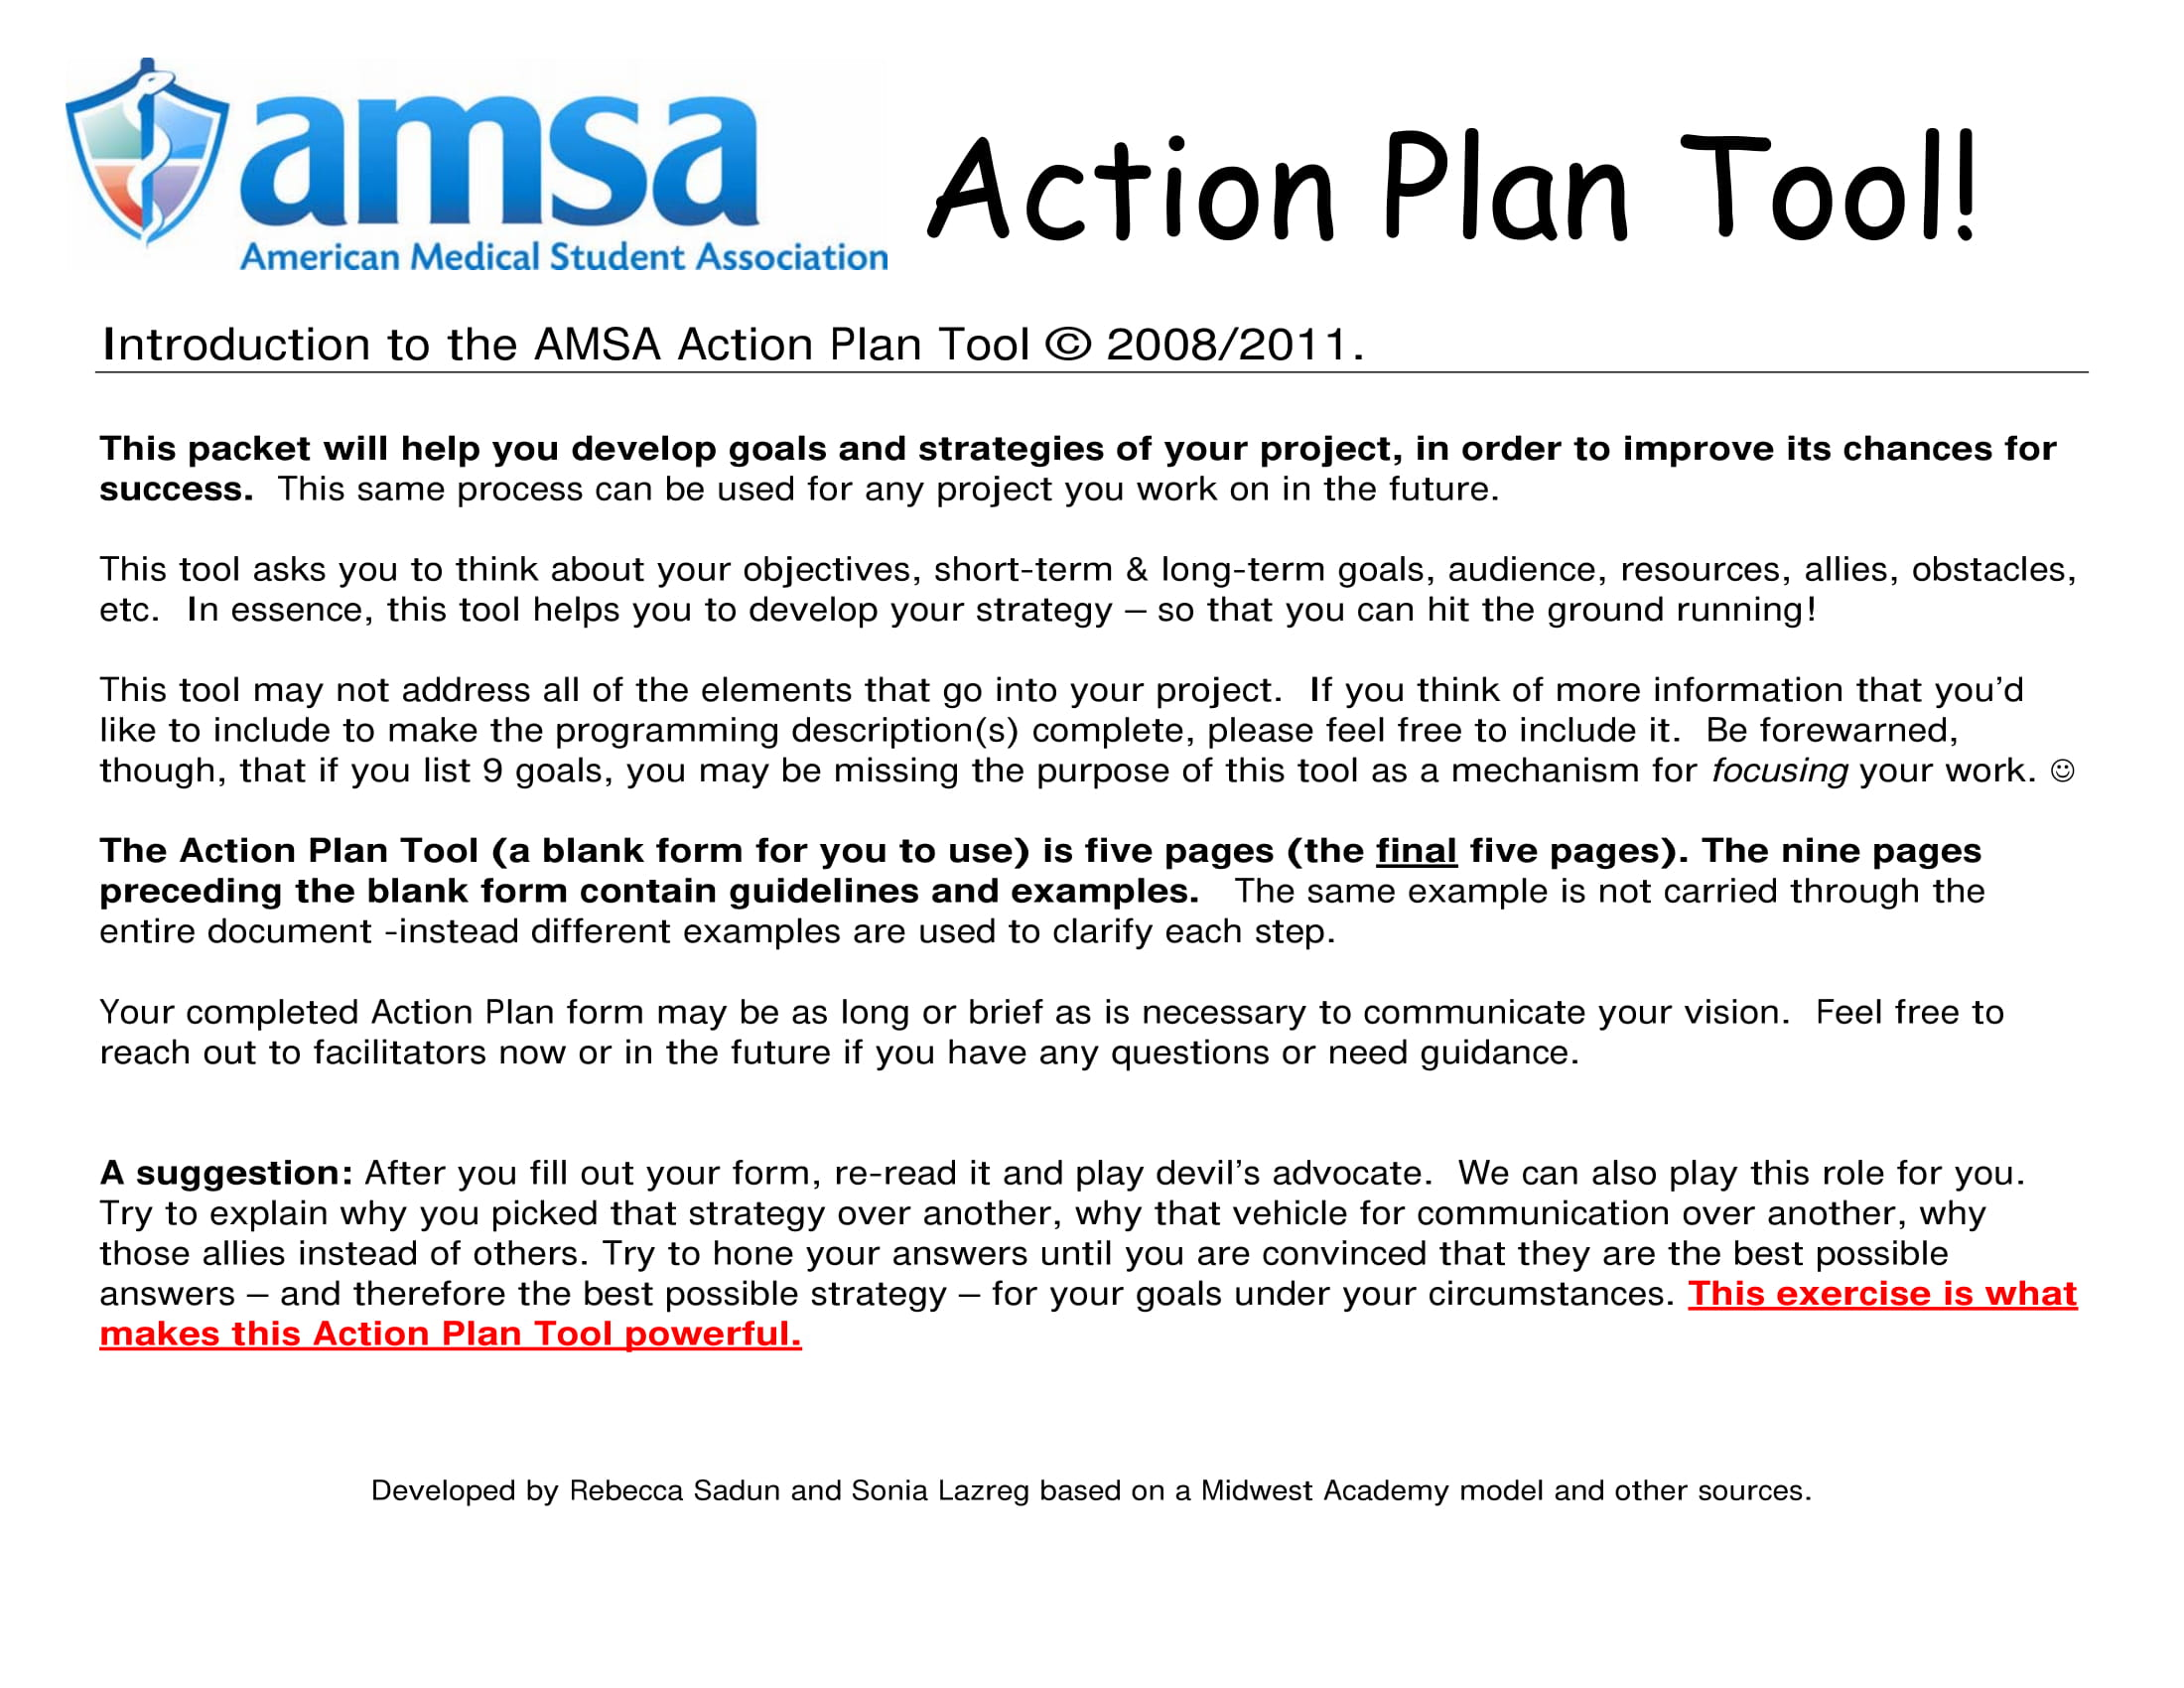 action plan tool for project management example 01